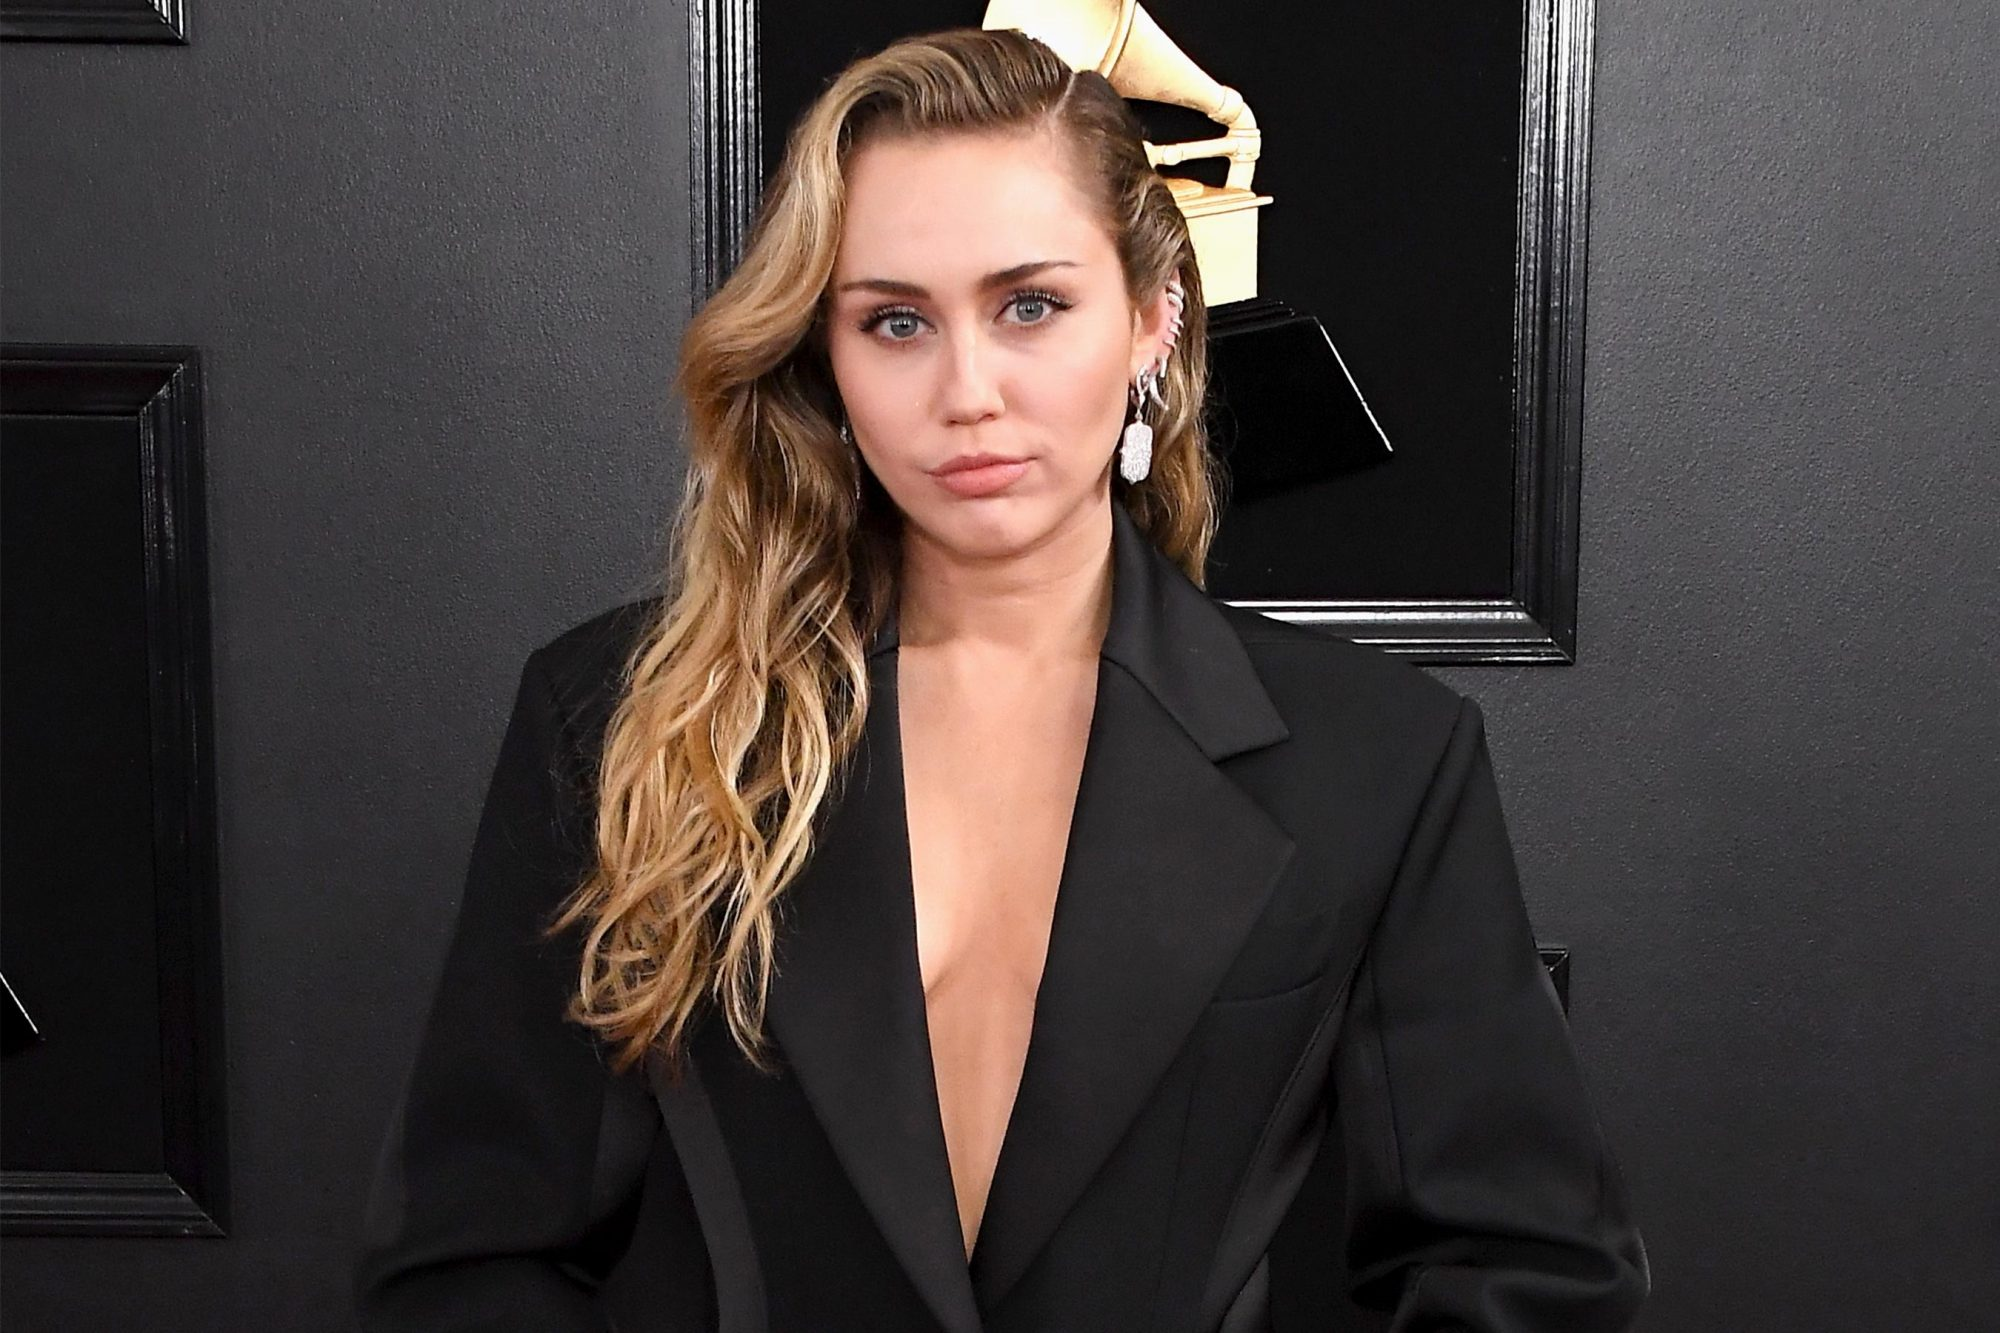 LOS ANGELES, CA - FEBRUARY 10: Miley Cyrus attends the 61st Annual GRAMMY Awards at Staples Center on February 10, 2019 in Los Angeles, California. (Photo by Steve Granitz/WireImage)